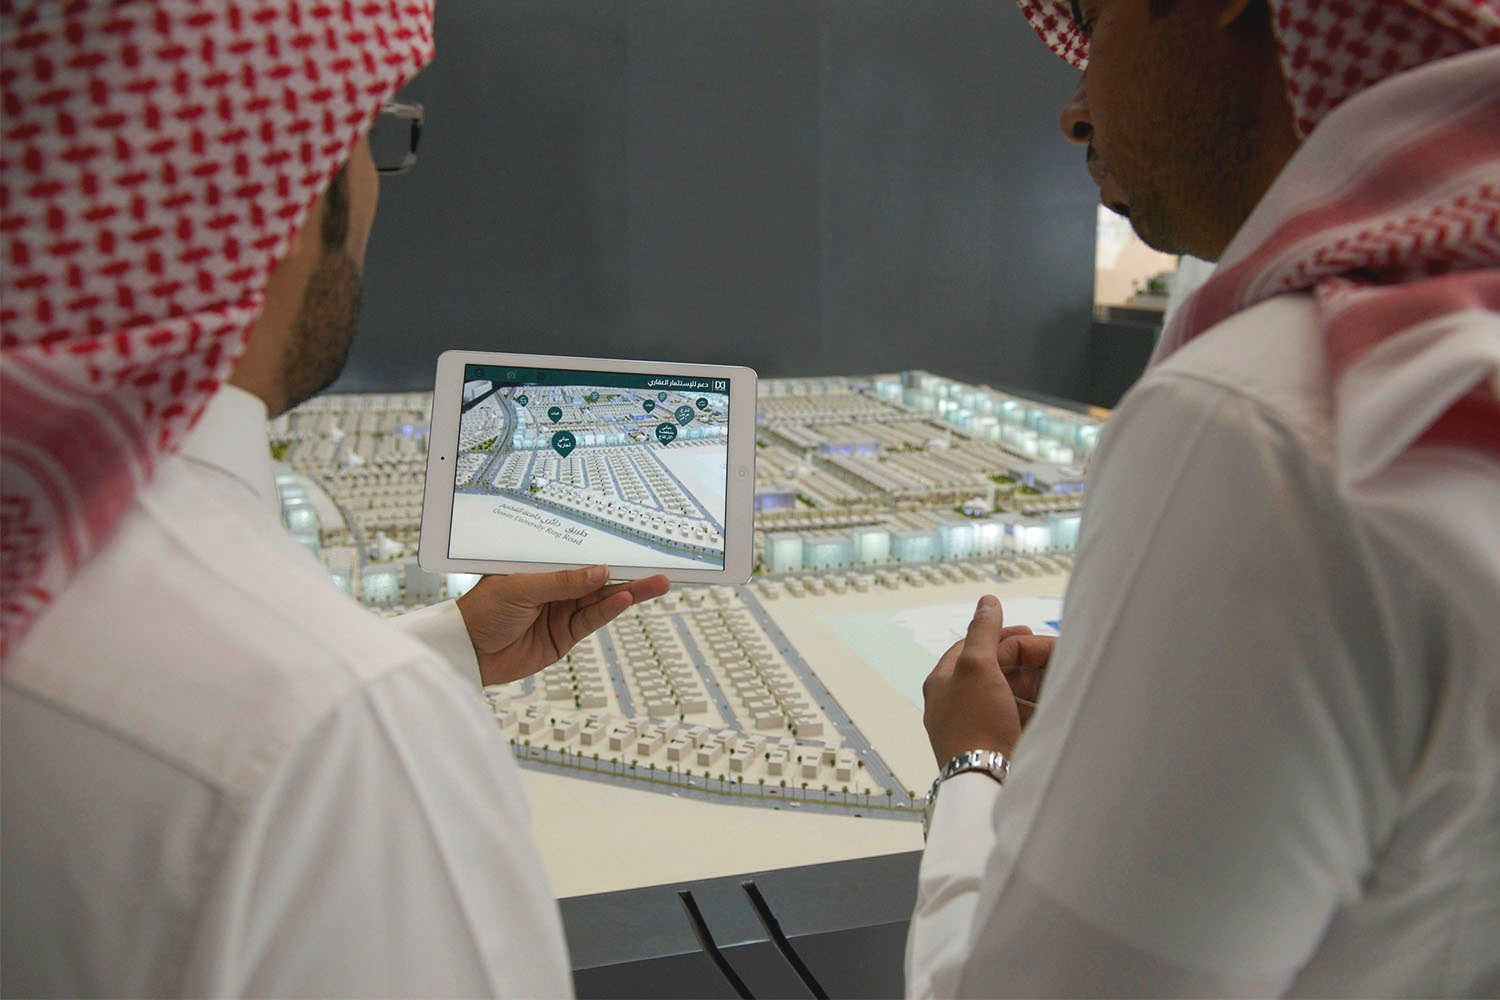 Daem Master plan, combined use of scale model and technology.